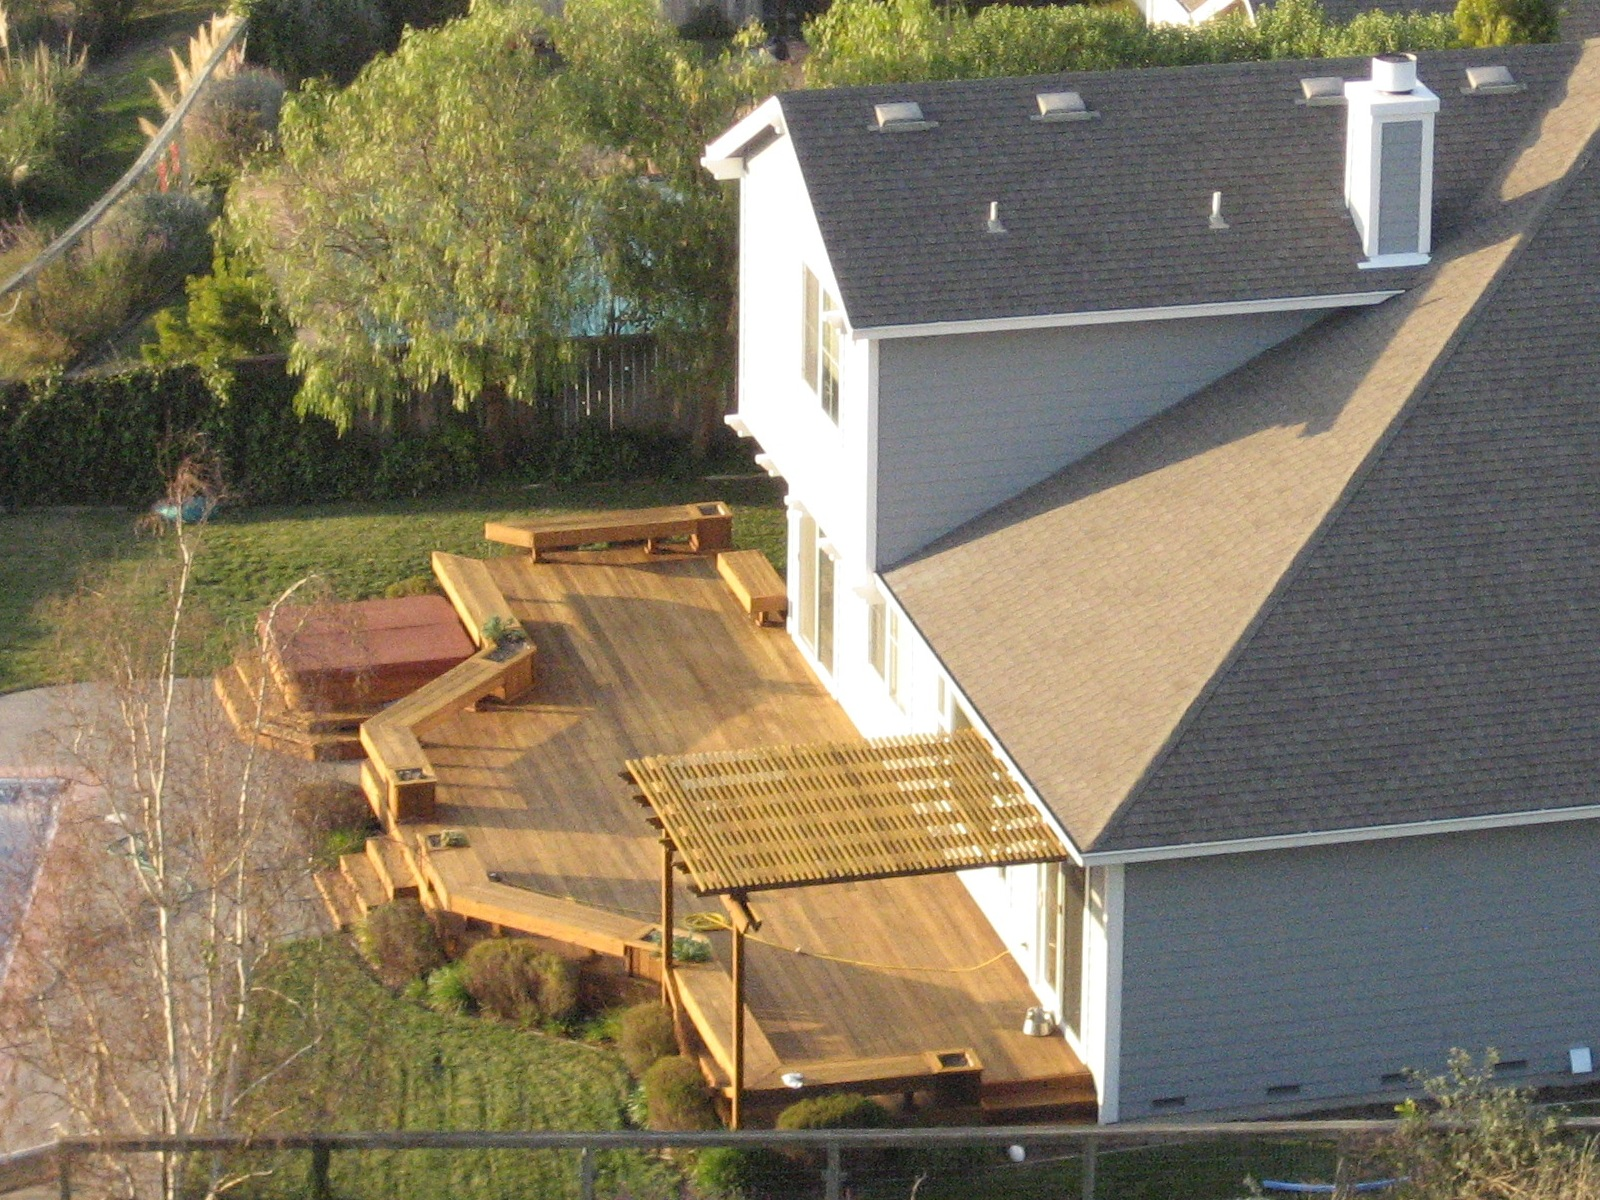 How to build a deck step by step thrifty outdoors for How to build a house step by step